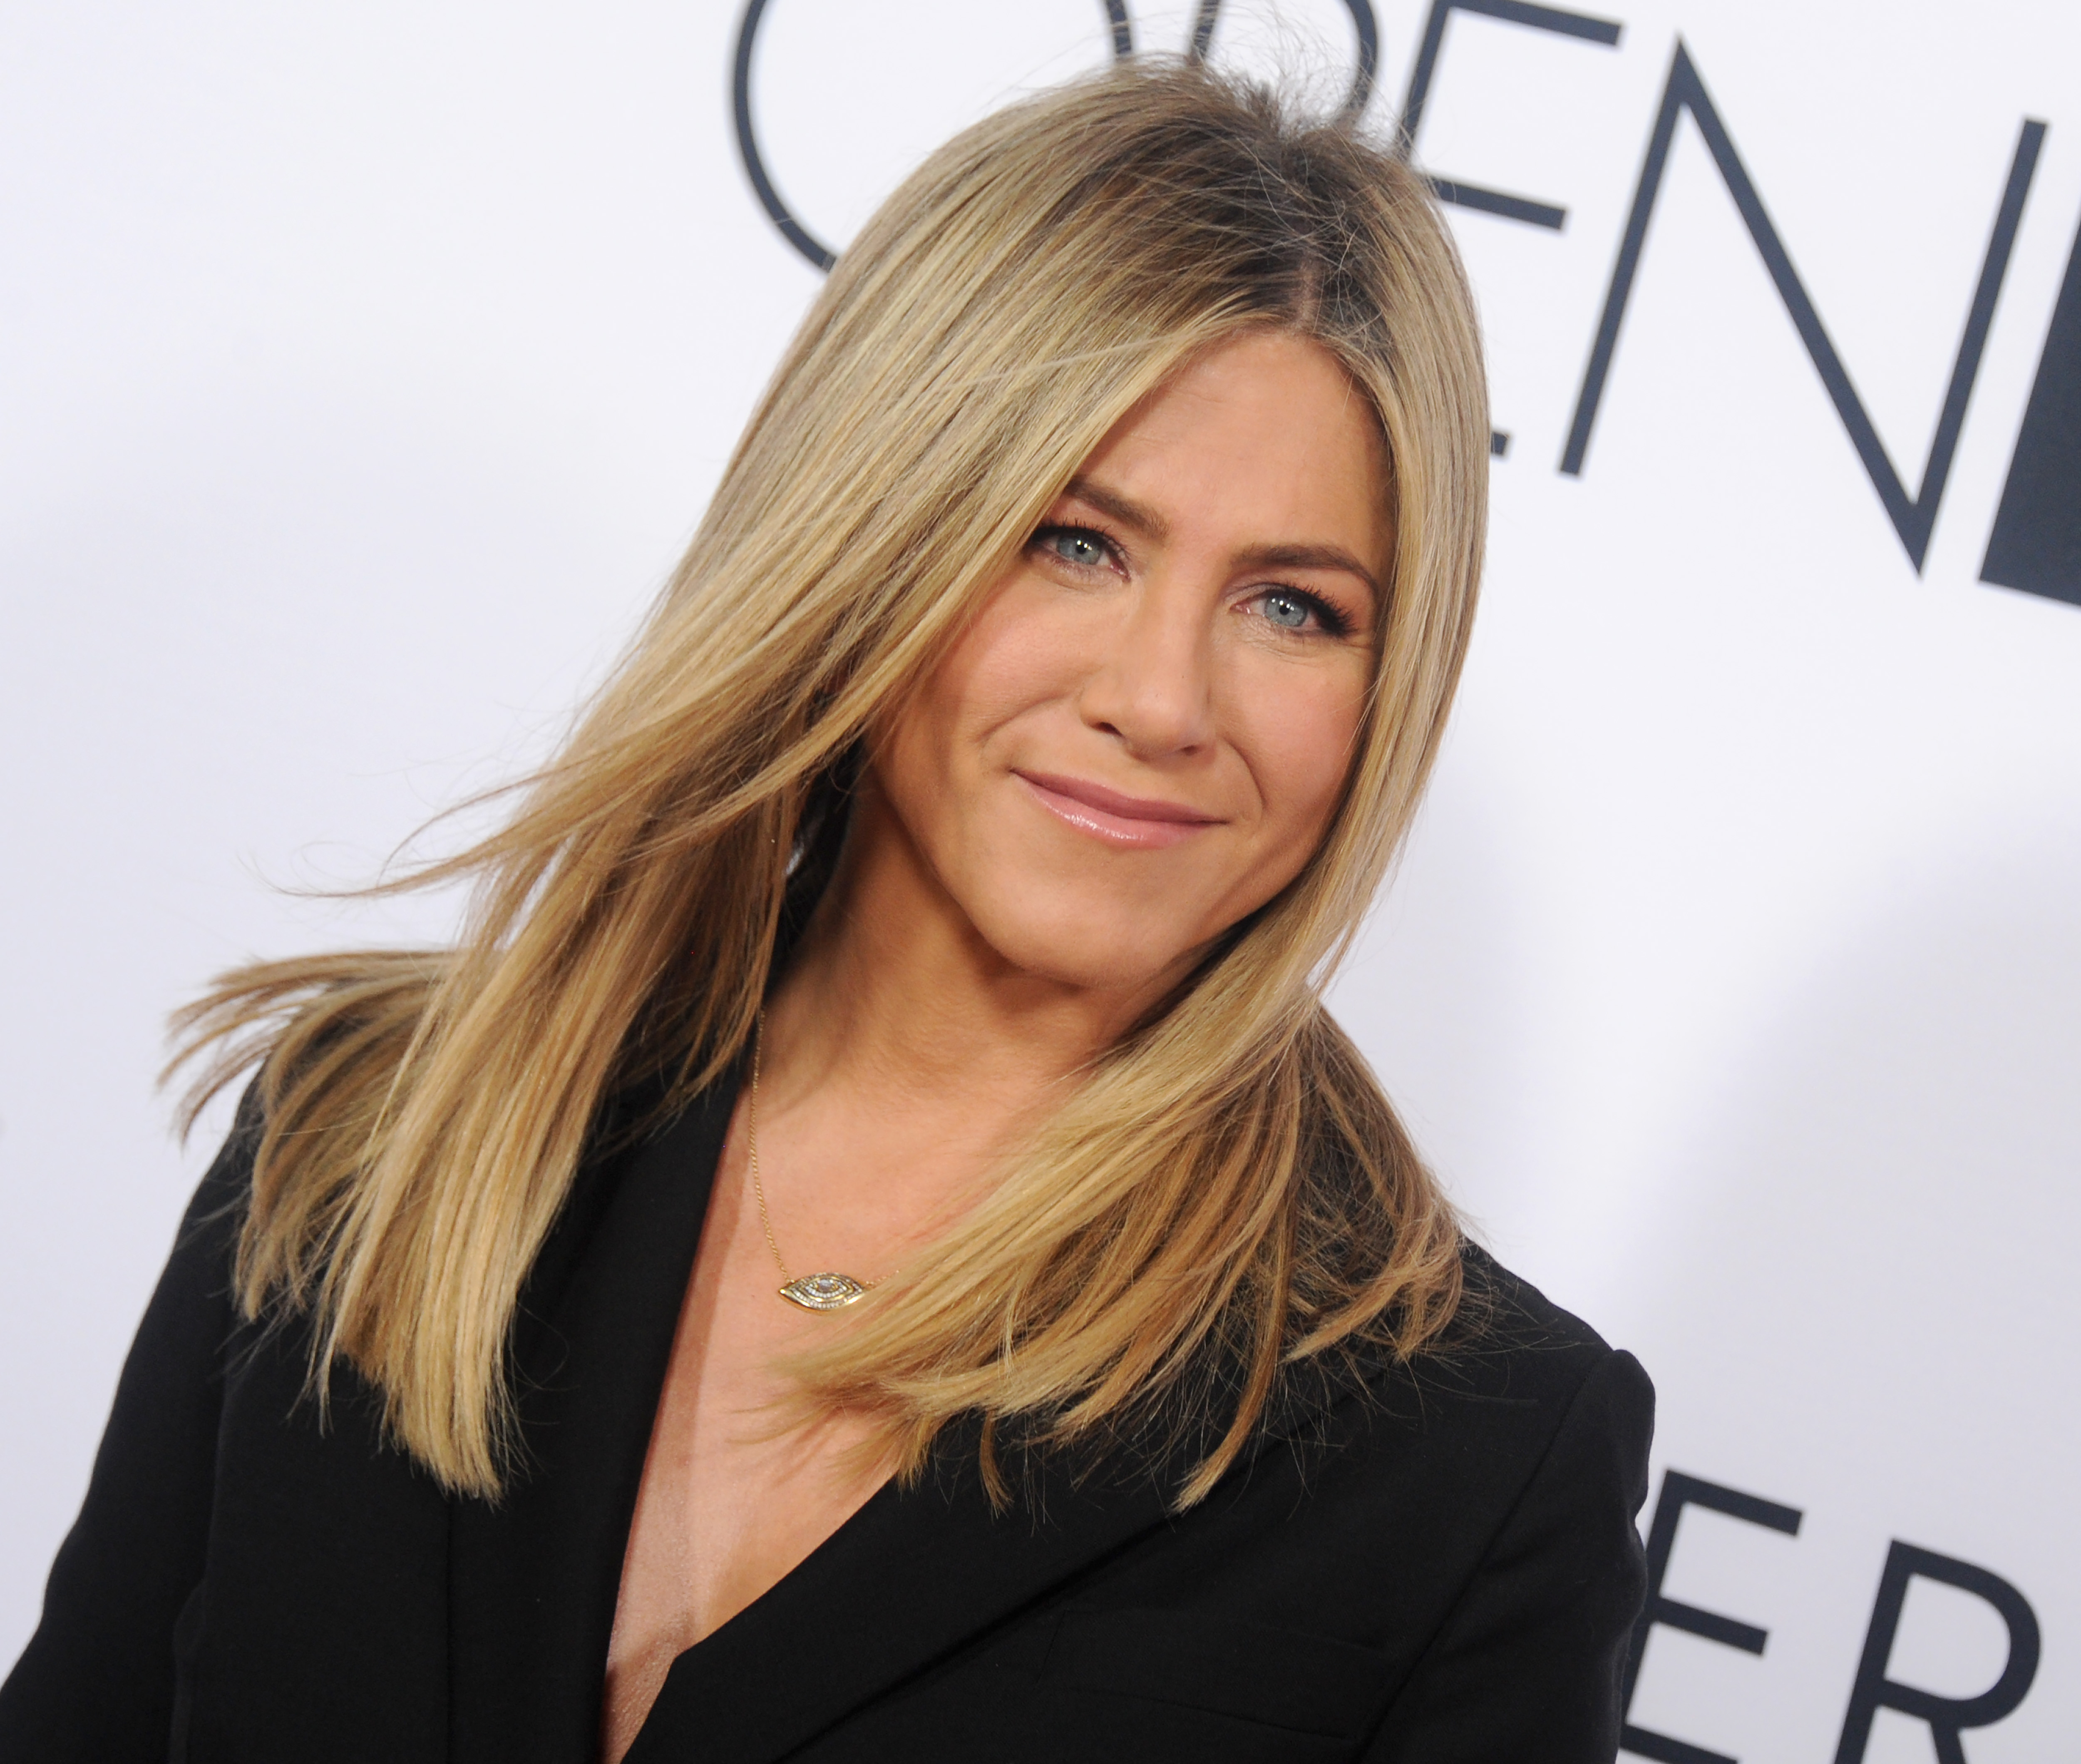 "<p>While you may expect <a href=""https://style.nine.com.au/2018/06/17/19/12/jennifer-aniston-courteney-cox"" target=""_blank"" title=""Jennifer Aniston"" draggable=""false"">Jennifer Aniston</a> to favour beauty items with a hefty price tag, her hair stylist has shared the actresses' go-to product for frizzy hair, and it's less than $20.</p> <p>The <em>Horrible Bosses </em>star's long time friend and celebrity hairdresser, Chris McMillan, who also works on the tresses of A-listers such as Margot Robbie and Kim Kardashian, posted an image of the 49 year-old's recent <a href=""https://style.nine.com.au/2018/08/02/08/52/ageless-body-ideals-instyle-magazine-jennifer-aniston"" target=""_blank"" title=""InStyle cover shoot"" draggable=""false"">InStyle cover shoot</a> with the following caption:</p> <p>""What a day!!! What a shoot. As for the hair. #natural #sebastian whipped creme mousse. @dysonhair diffuser and a dab of Murray's pomade to help define these waves. #love #hair #obsessed and a special thanks to @justinanderson for the amazing color in Jens hair. #teamwork.""</p> <p>The good news for us is that Murray's Superior Hair Dressing Pomade is available in Australia and at just under $20, won't break the bank. </p> <p>The pomade has been used for over 60 years to tame frizz and flyaways. The brand itself claims just a small amount not only adds texture but shine and lift, and will keep styling in place all day.</p> <p>Aniston isn't the only star with a favourite budget buy. We've rounded up some of our favourite A-listers and the tried-and-true beauty picks they swear by.</p> <p>Click through to see which one is right for you.</p>"